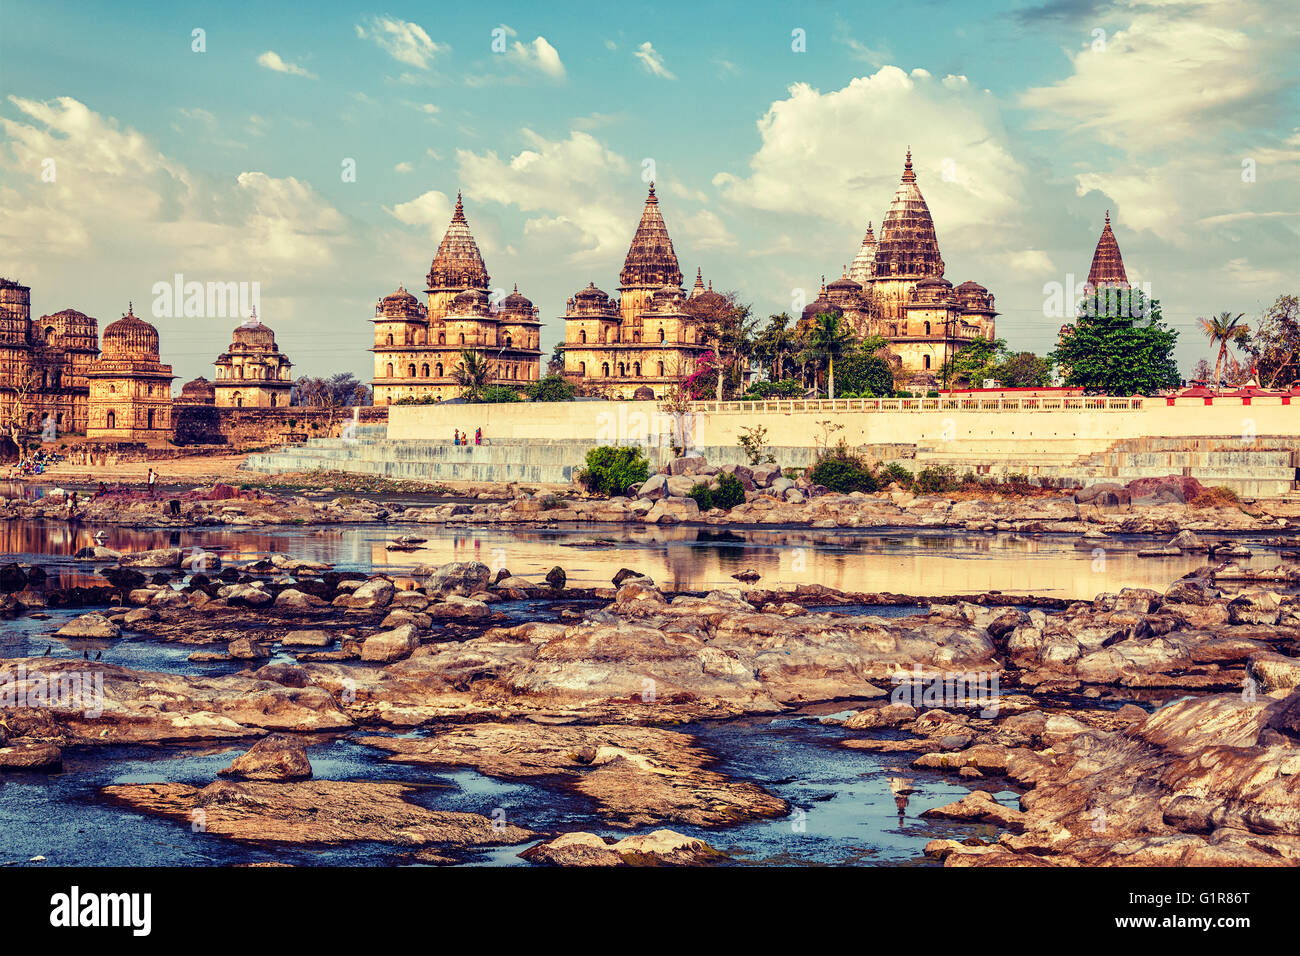 Royal cenotaphs of Orchha,  Madhya Pradesh, India - Stock Image